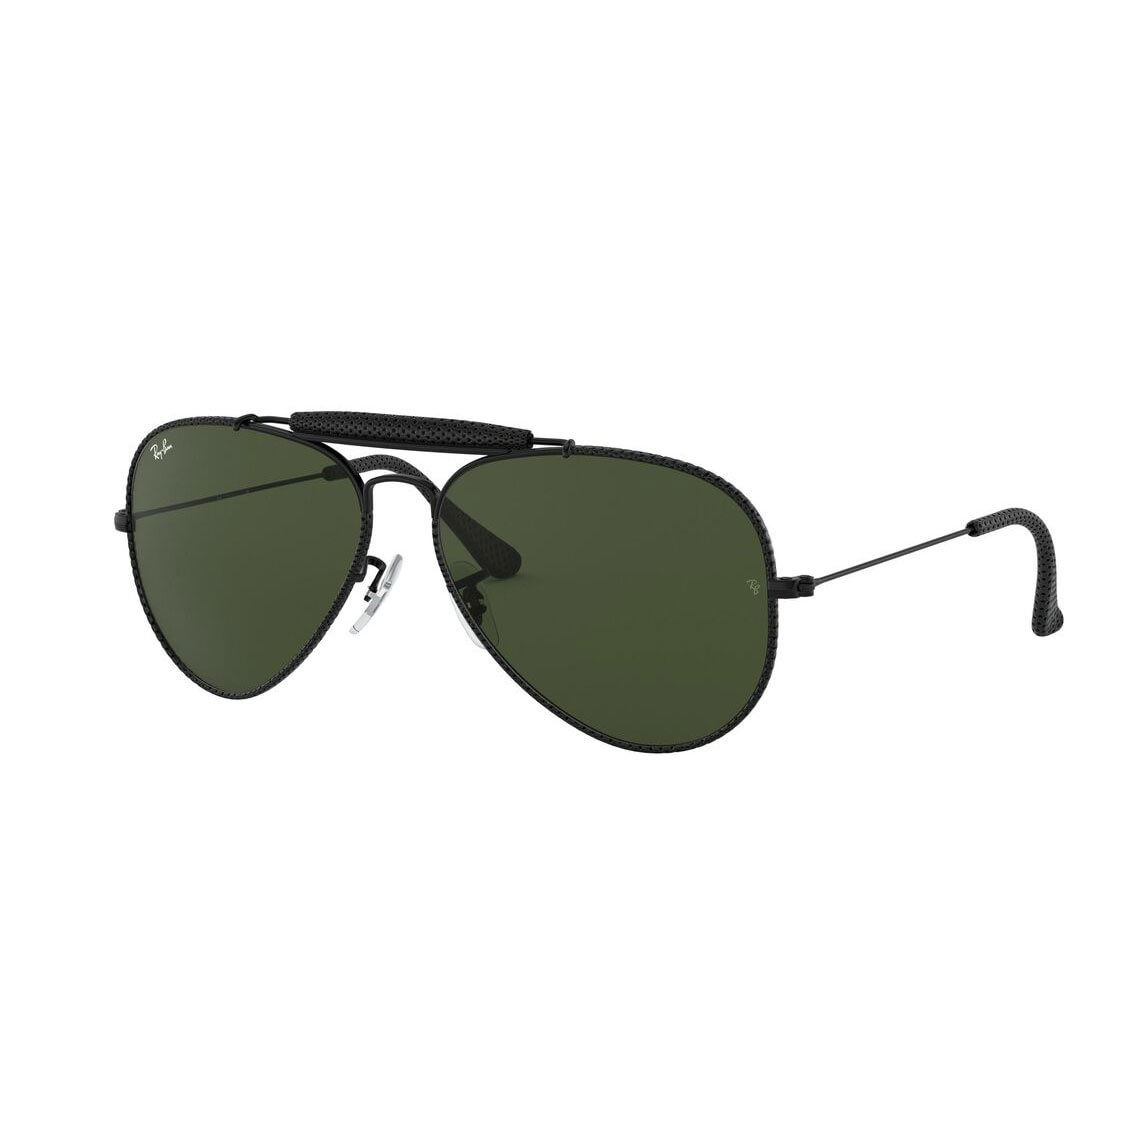 Ray-Ban Outdoorsman craft RB3422Q 9040 58